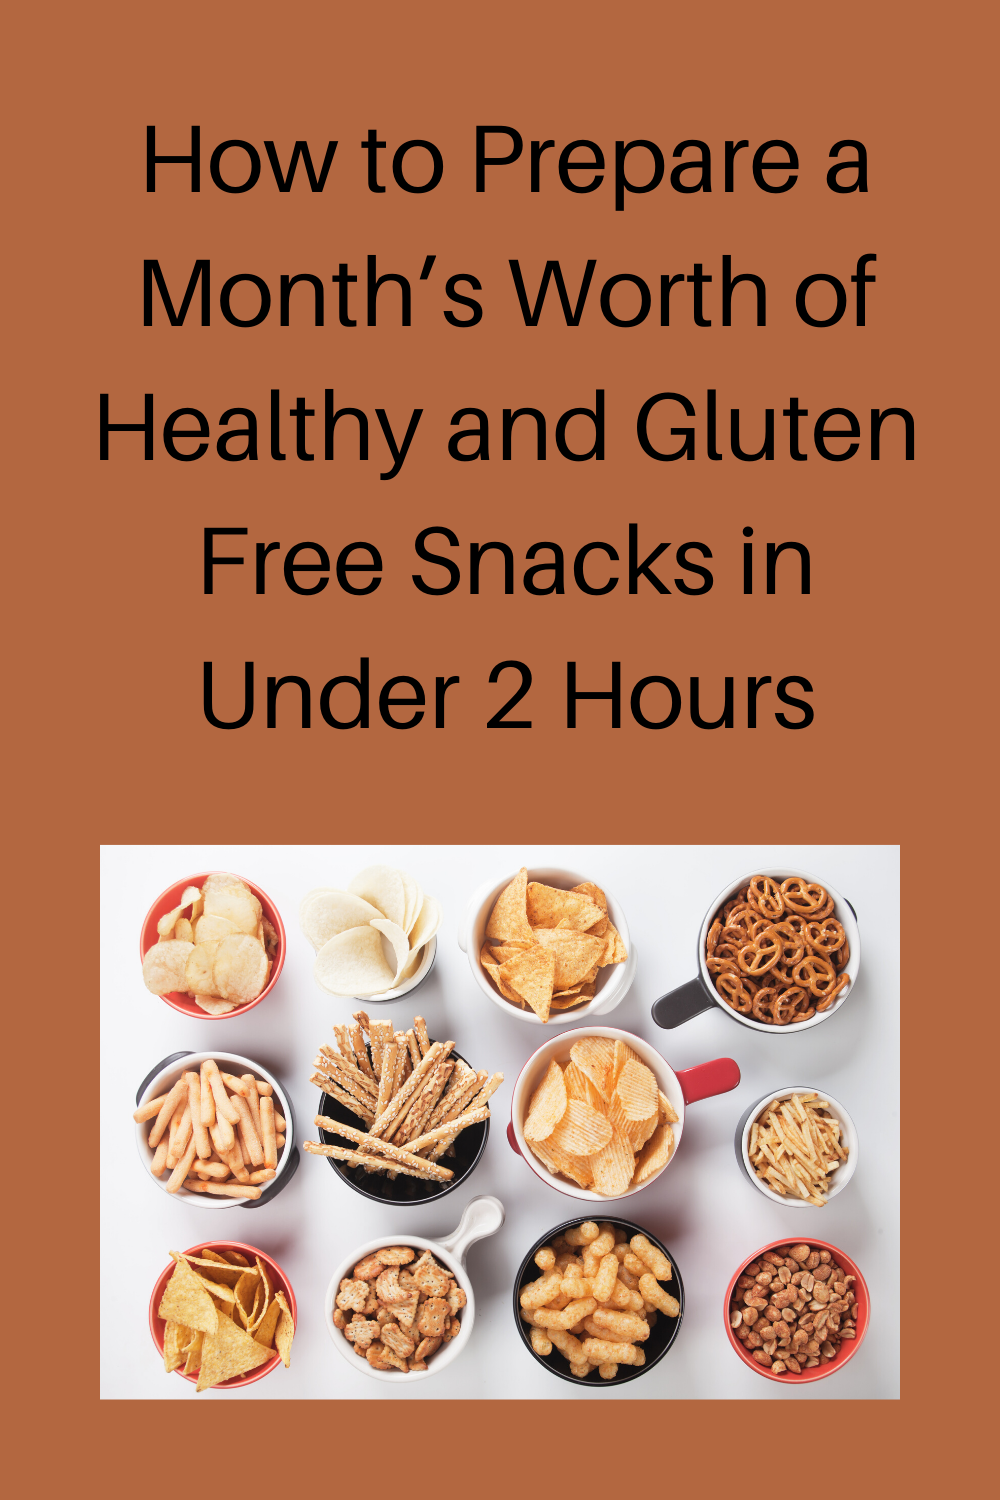 How to prepare a month's worth of healthy and gluten free snacks in under 2 hours